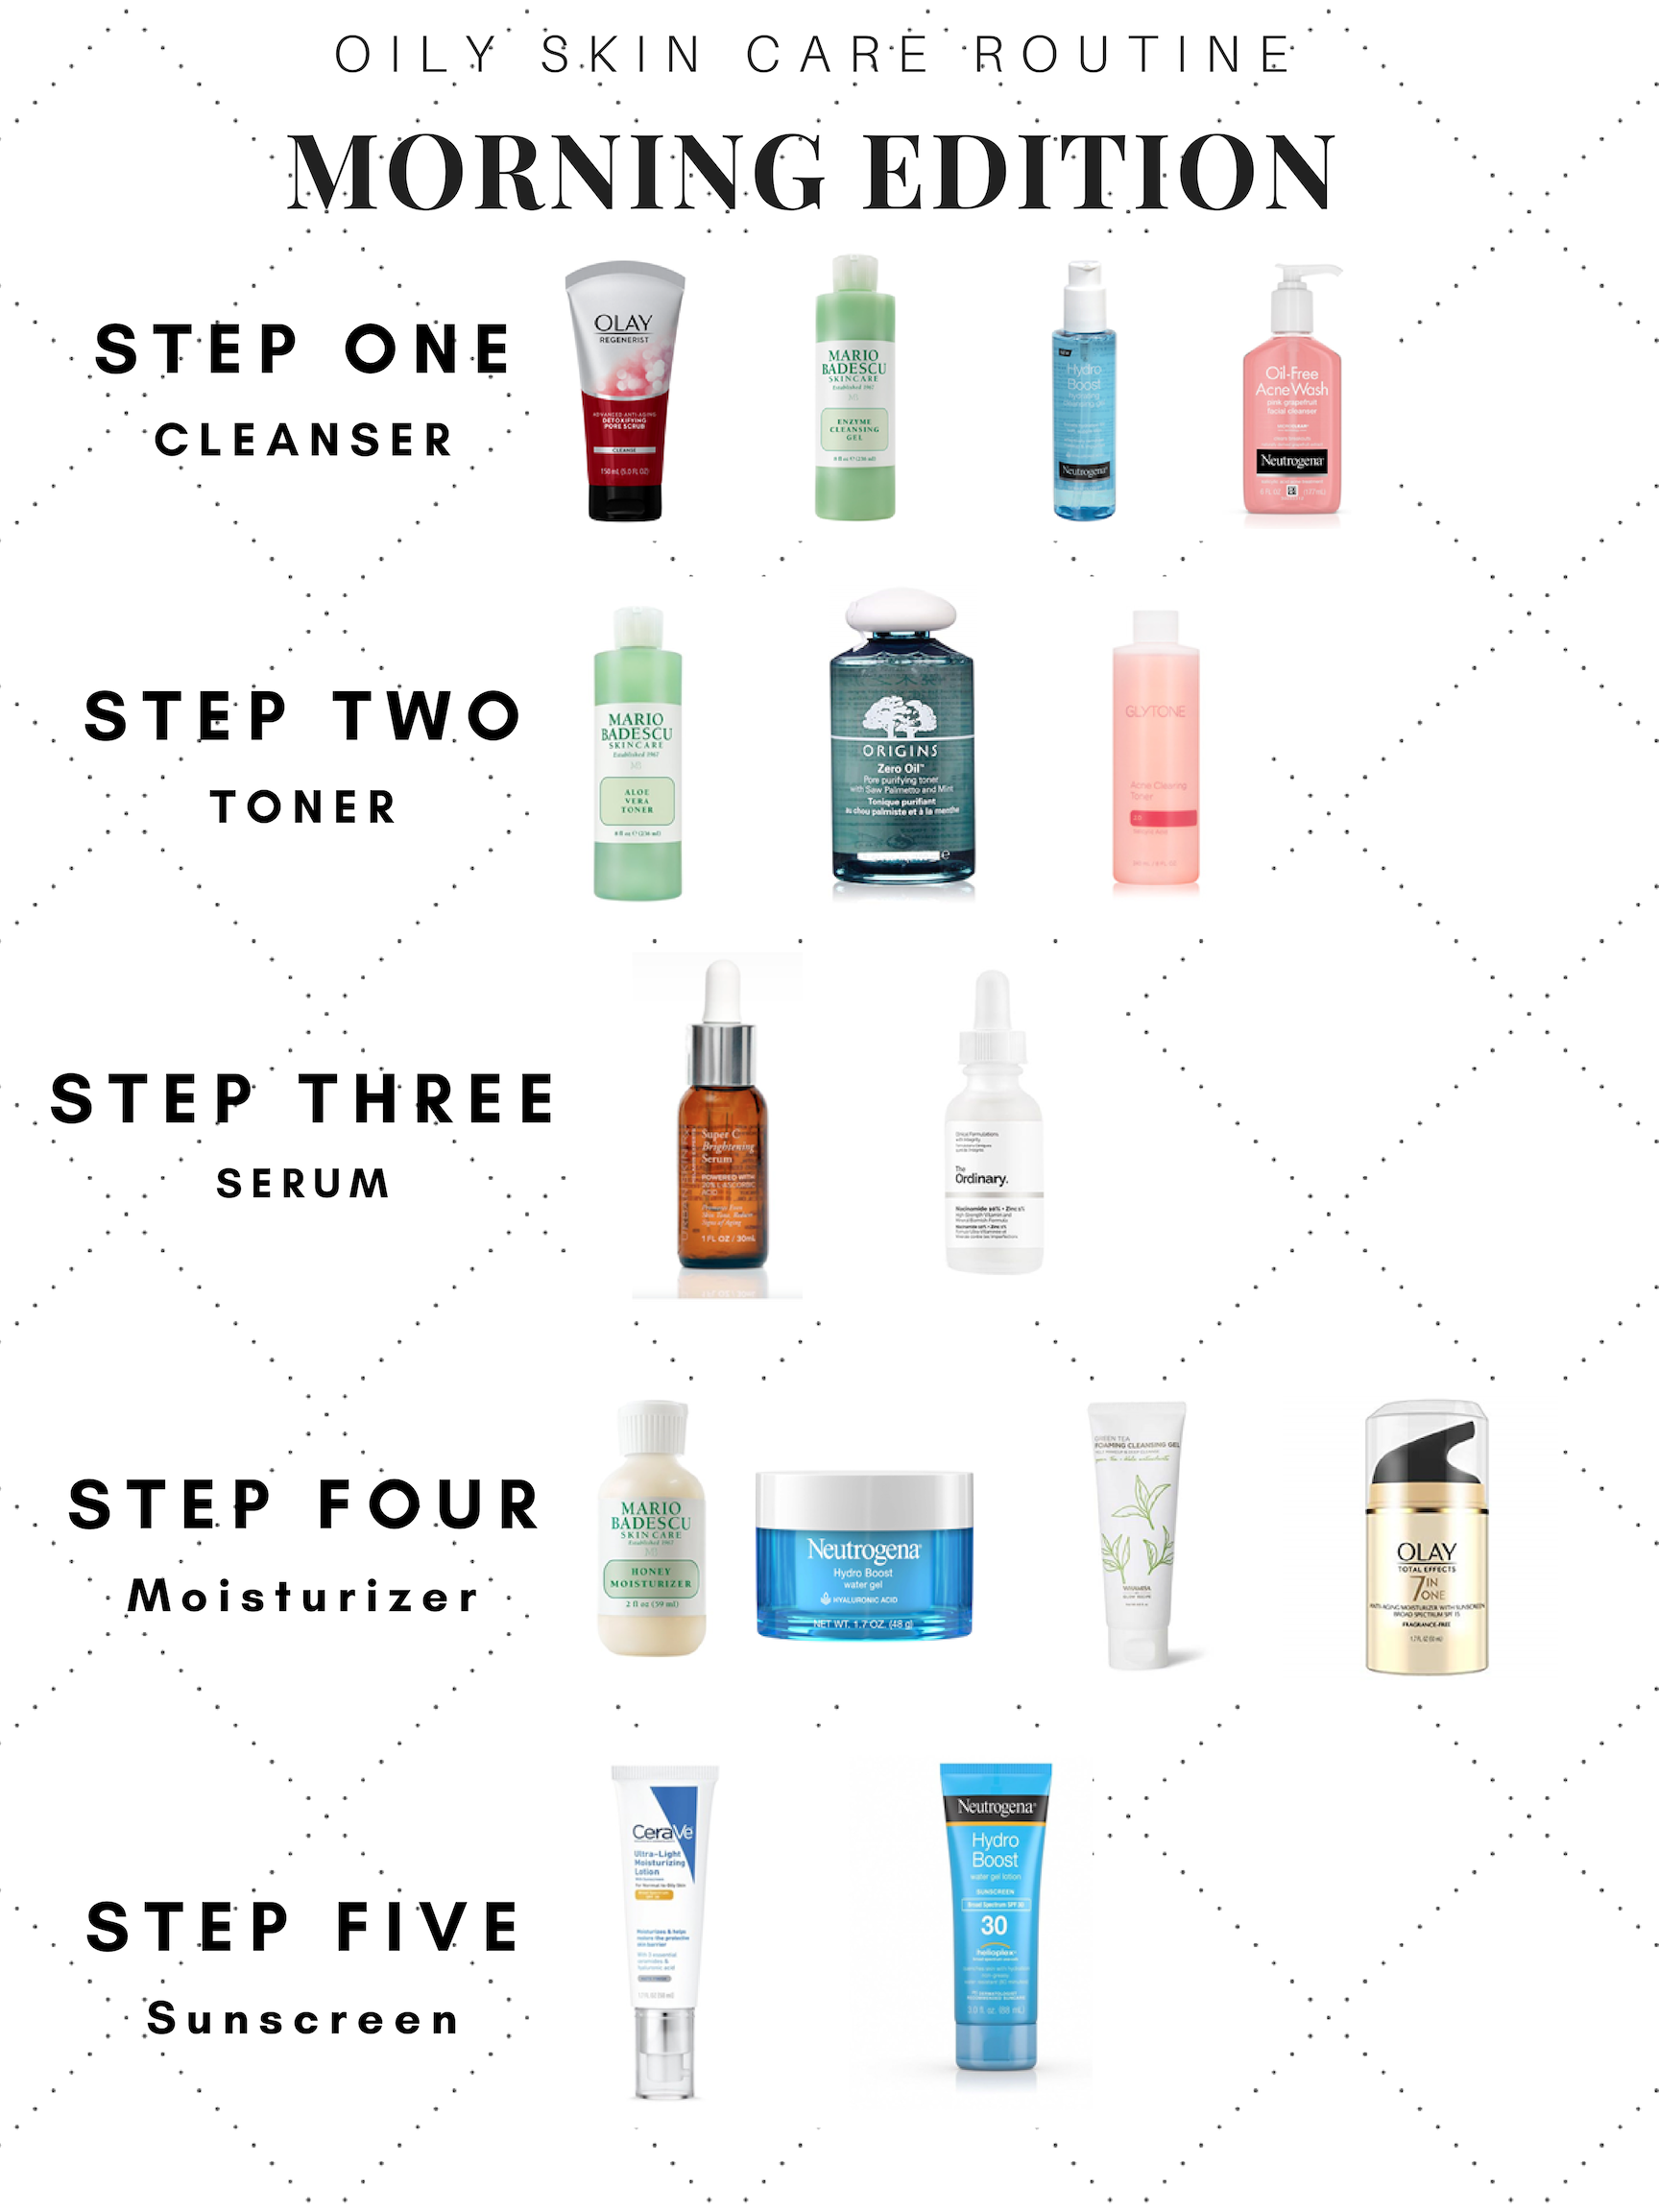 Morning oily skin care routine. Step by step skin care